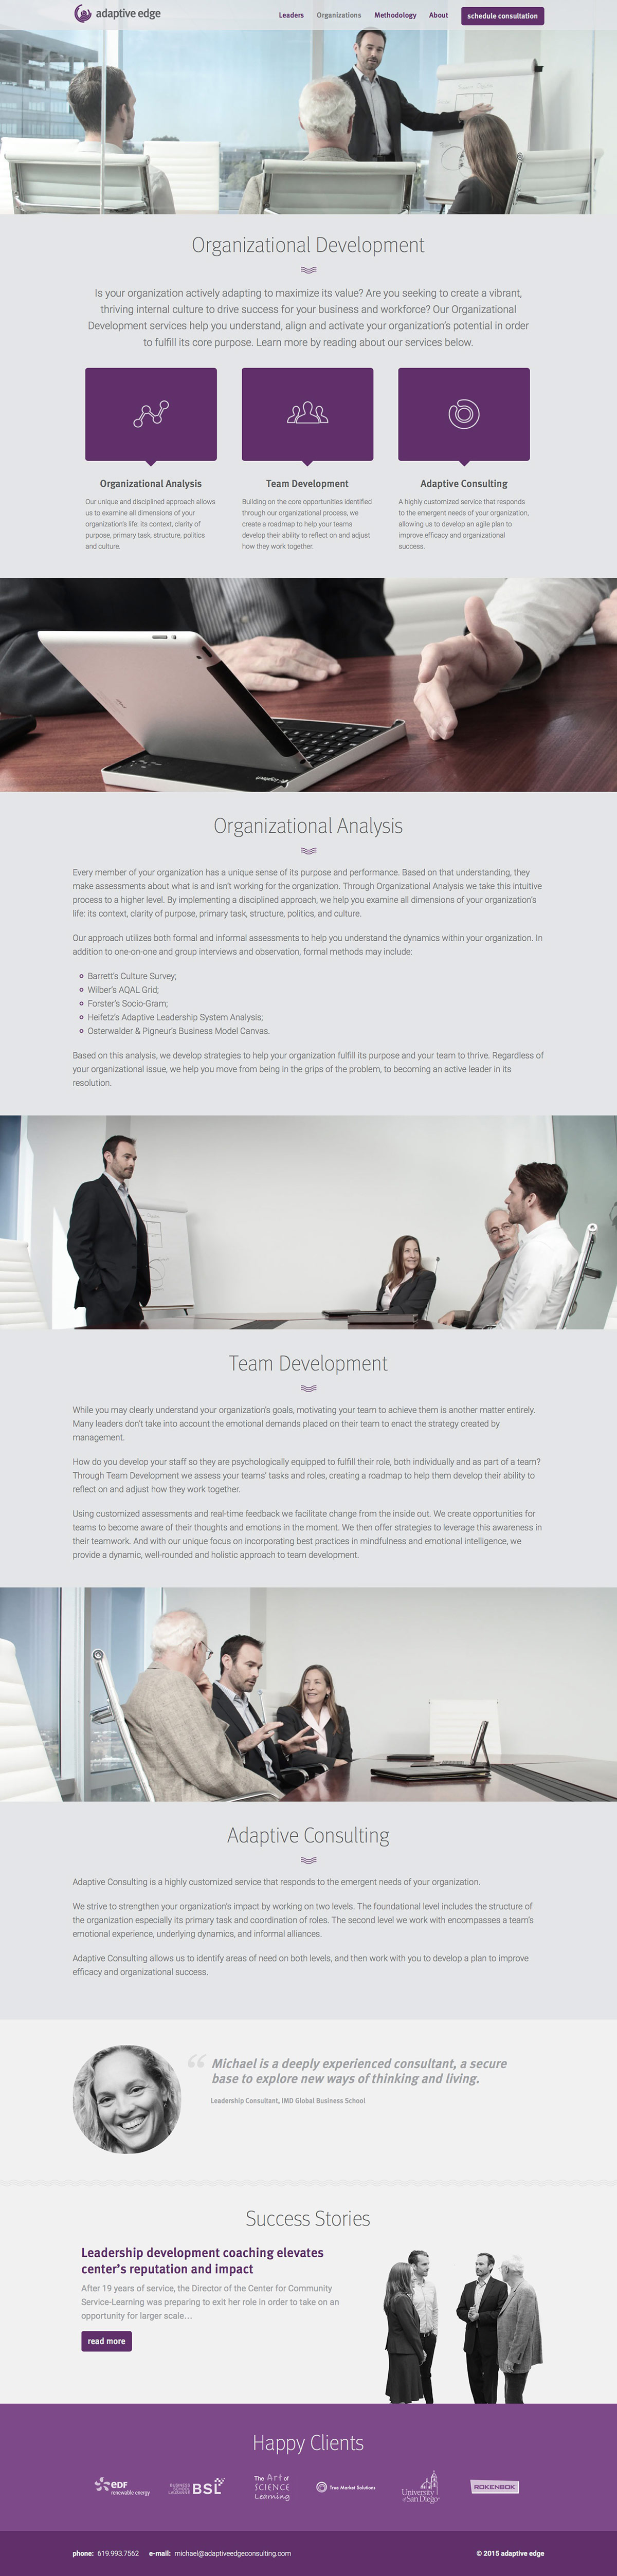 ignyte web design agency organizations